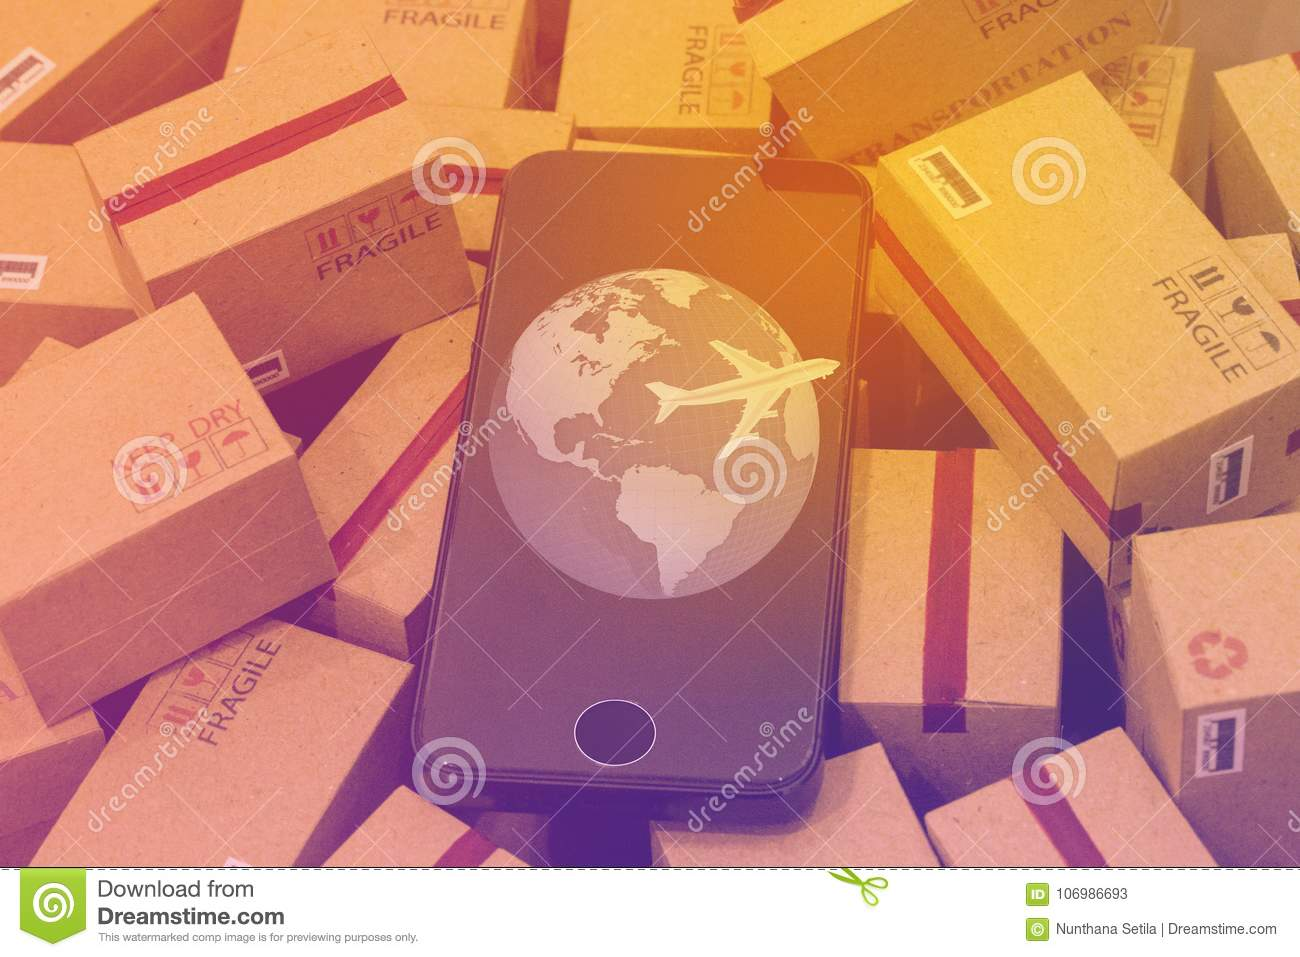 World map with mobile phone on pile of cardboard boxes an idea royalty free stock photo download world map with mobile phone on pile of cardboard boxes an idea stock image publicscrutiny Choice Image